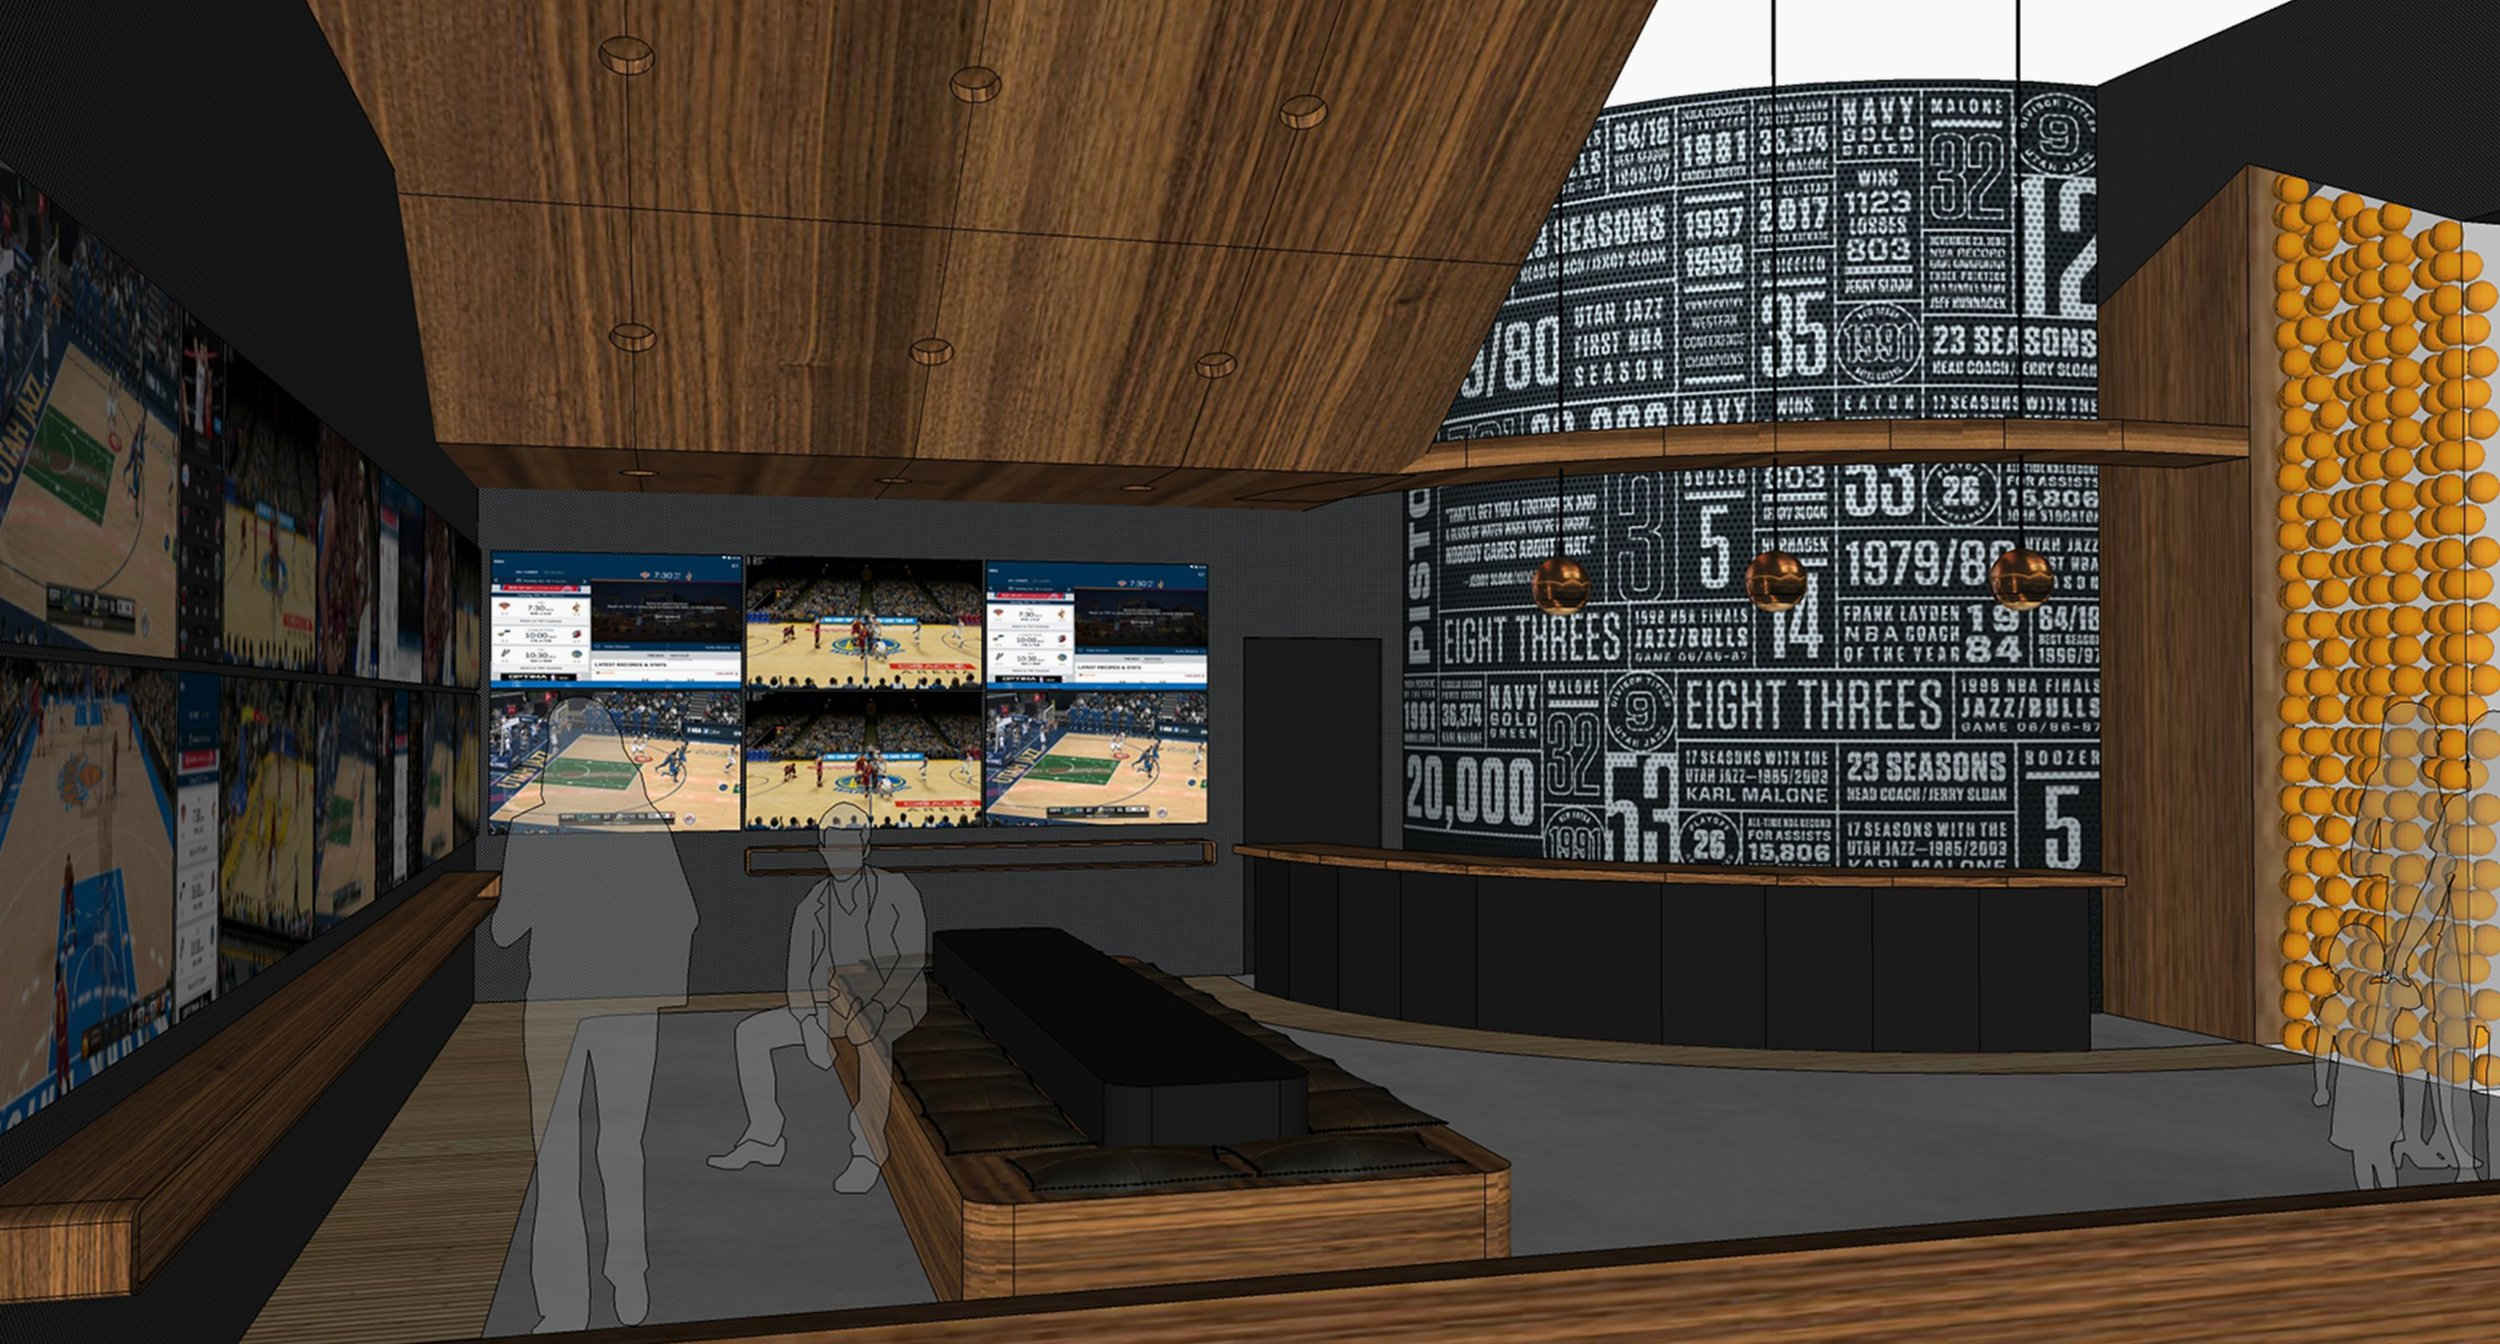 3D rendering of Home Court's media wall